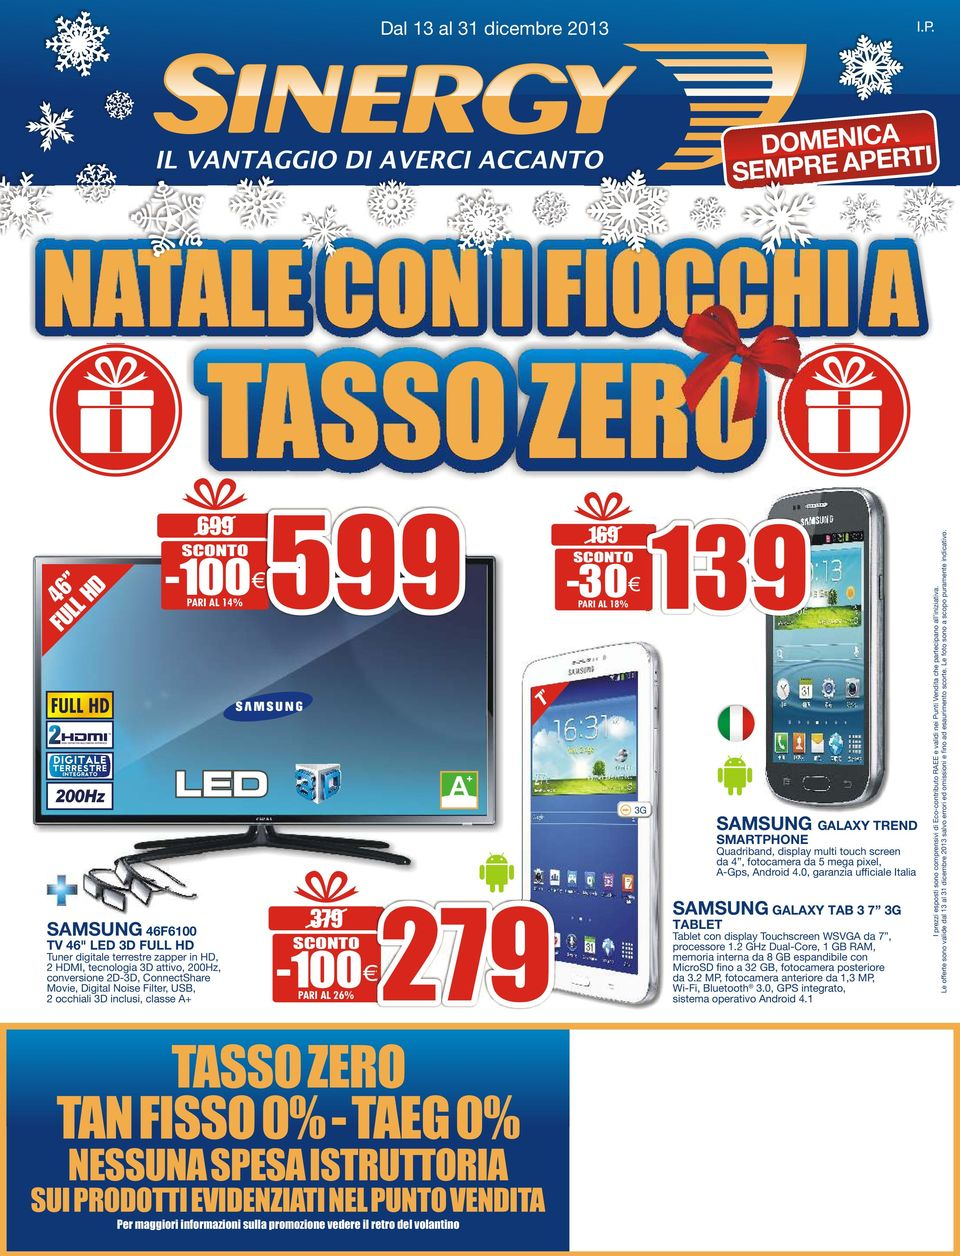 pixel, -Gps, ndroid 4., garanzia ufficiale Italia TBLET Tablet con display Touchscreen WSVG da 7, processore 1.